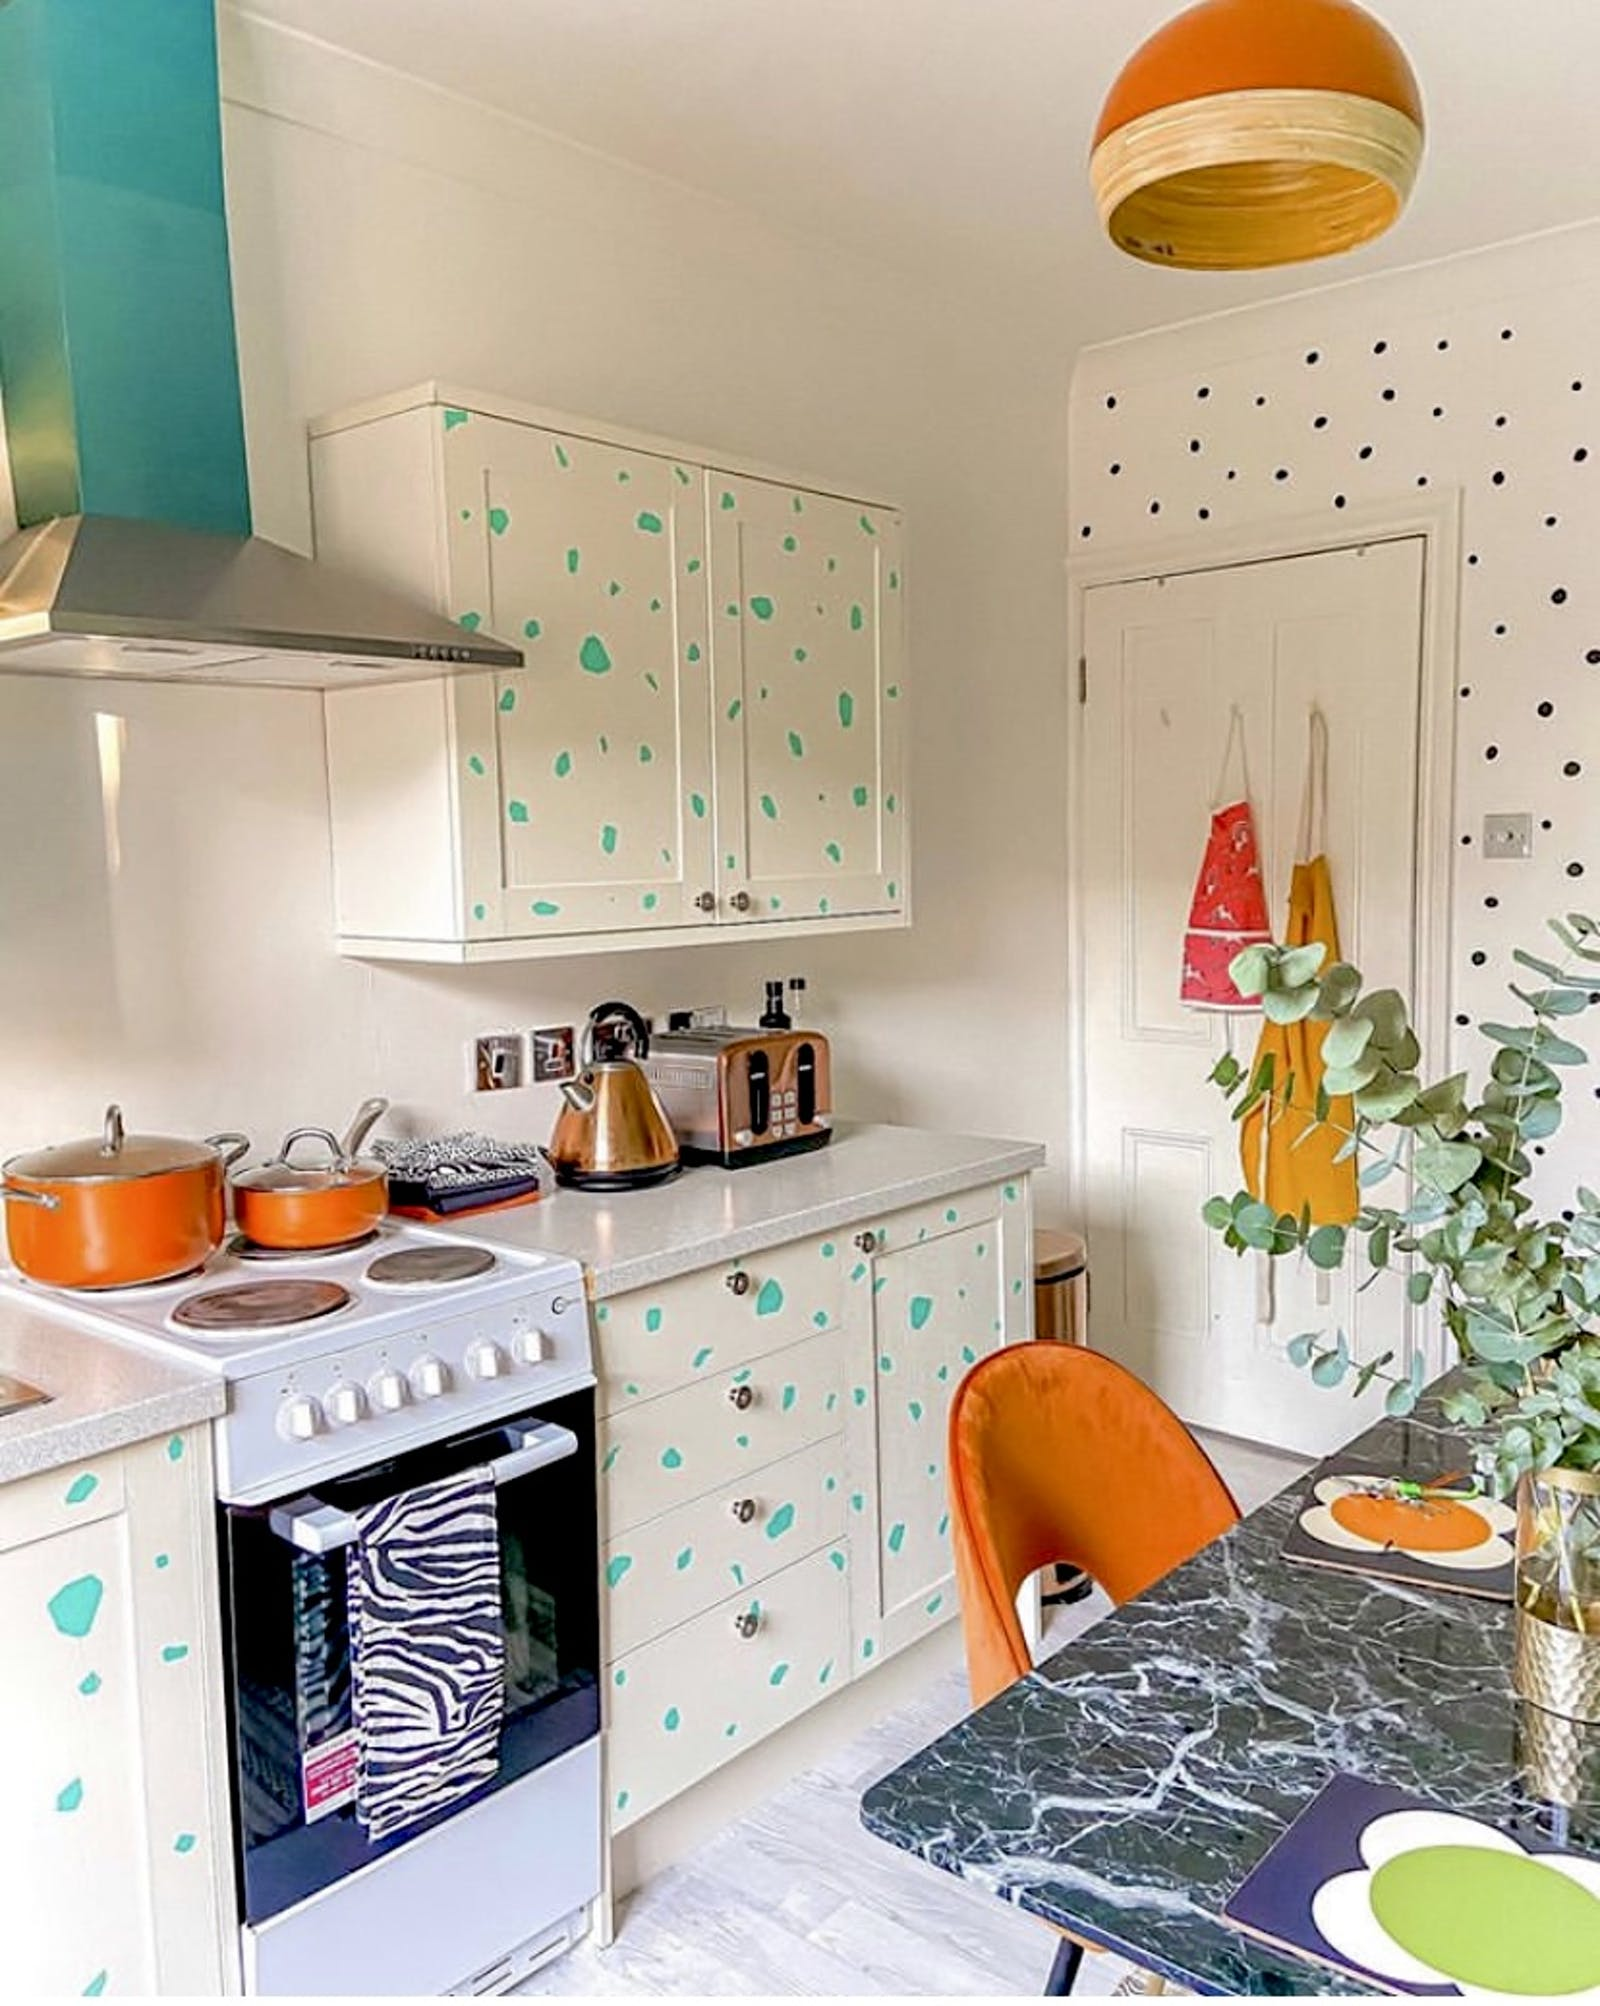 Brightly coloured kitchen with polkadot kitchen cupboards